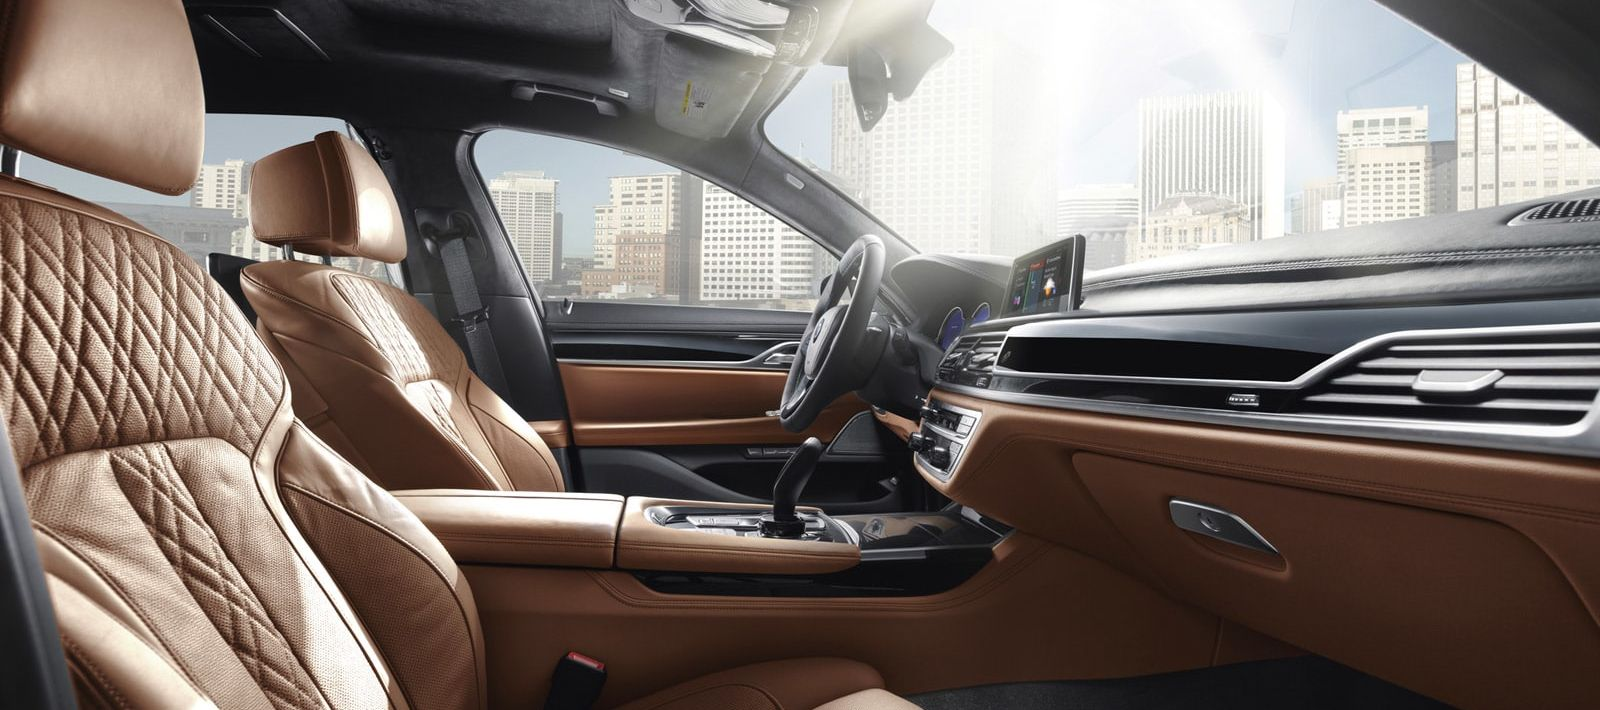 Interior of the 2018 BMW 7 Series